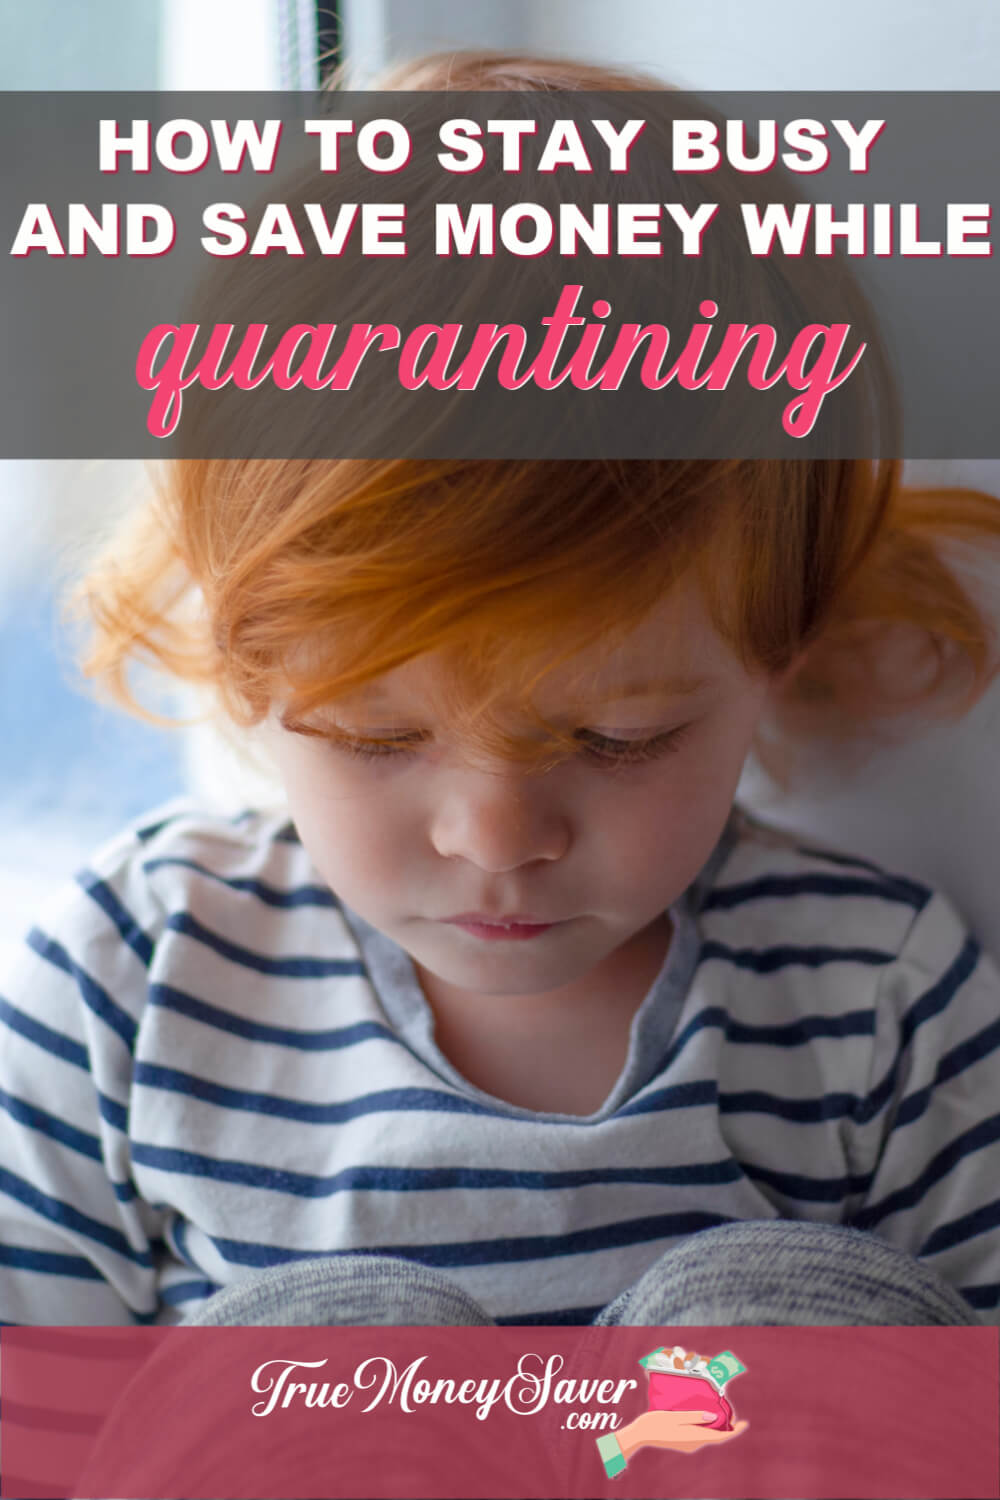 Are you worried about having to quarantine in your home? I\'ll share my best quarantine tips to stay busy and save money so you get bored and spend it! Use these quarantine preparedness tips to get learning before you have to quarantine!  #truemoneysaver #quarantining #virus #quarantine #quarantined #quarantineandchill #quarantinedgang #quarantinelife #quarantinestation #quarantineactivities #quarantinecrafts #quarantineparty #quarantineathome #quarantinetime #quarantiningmyself